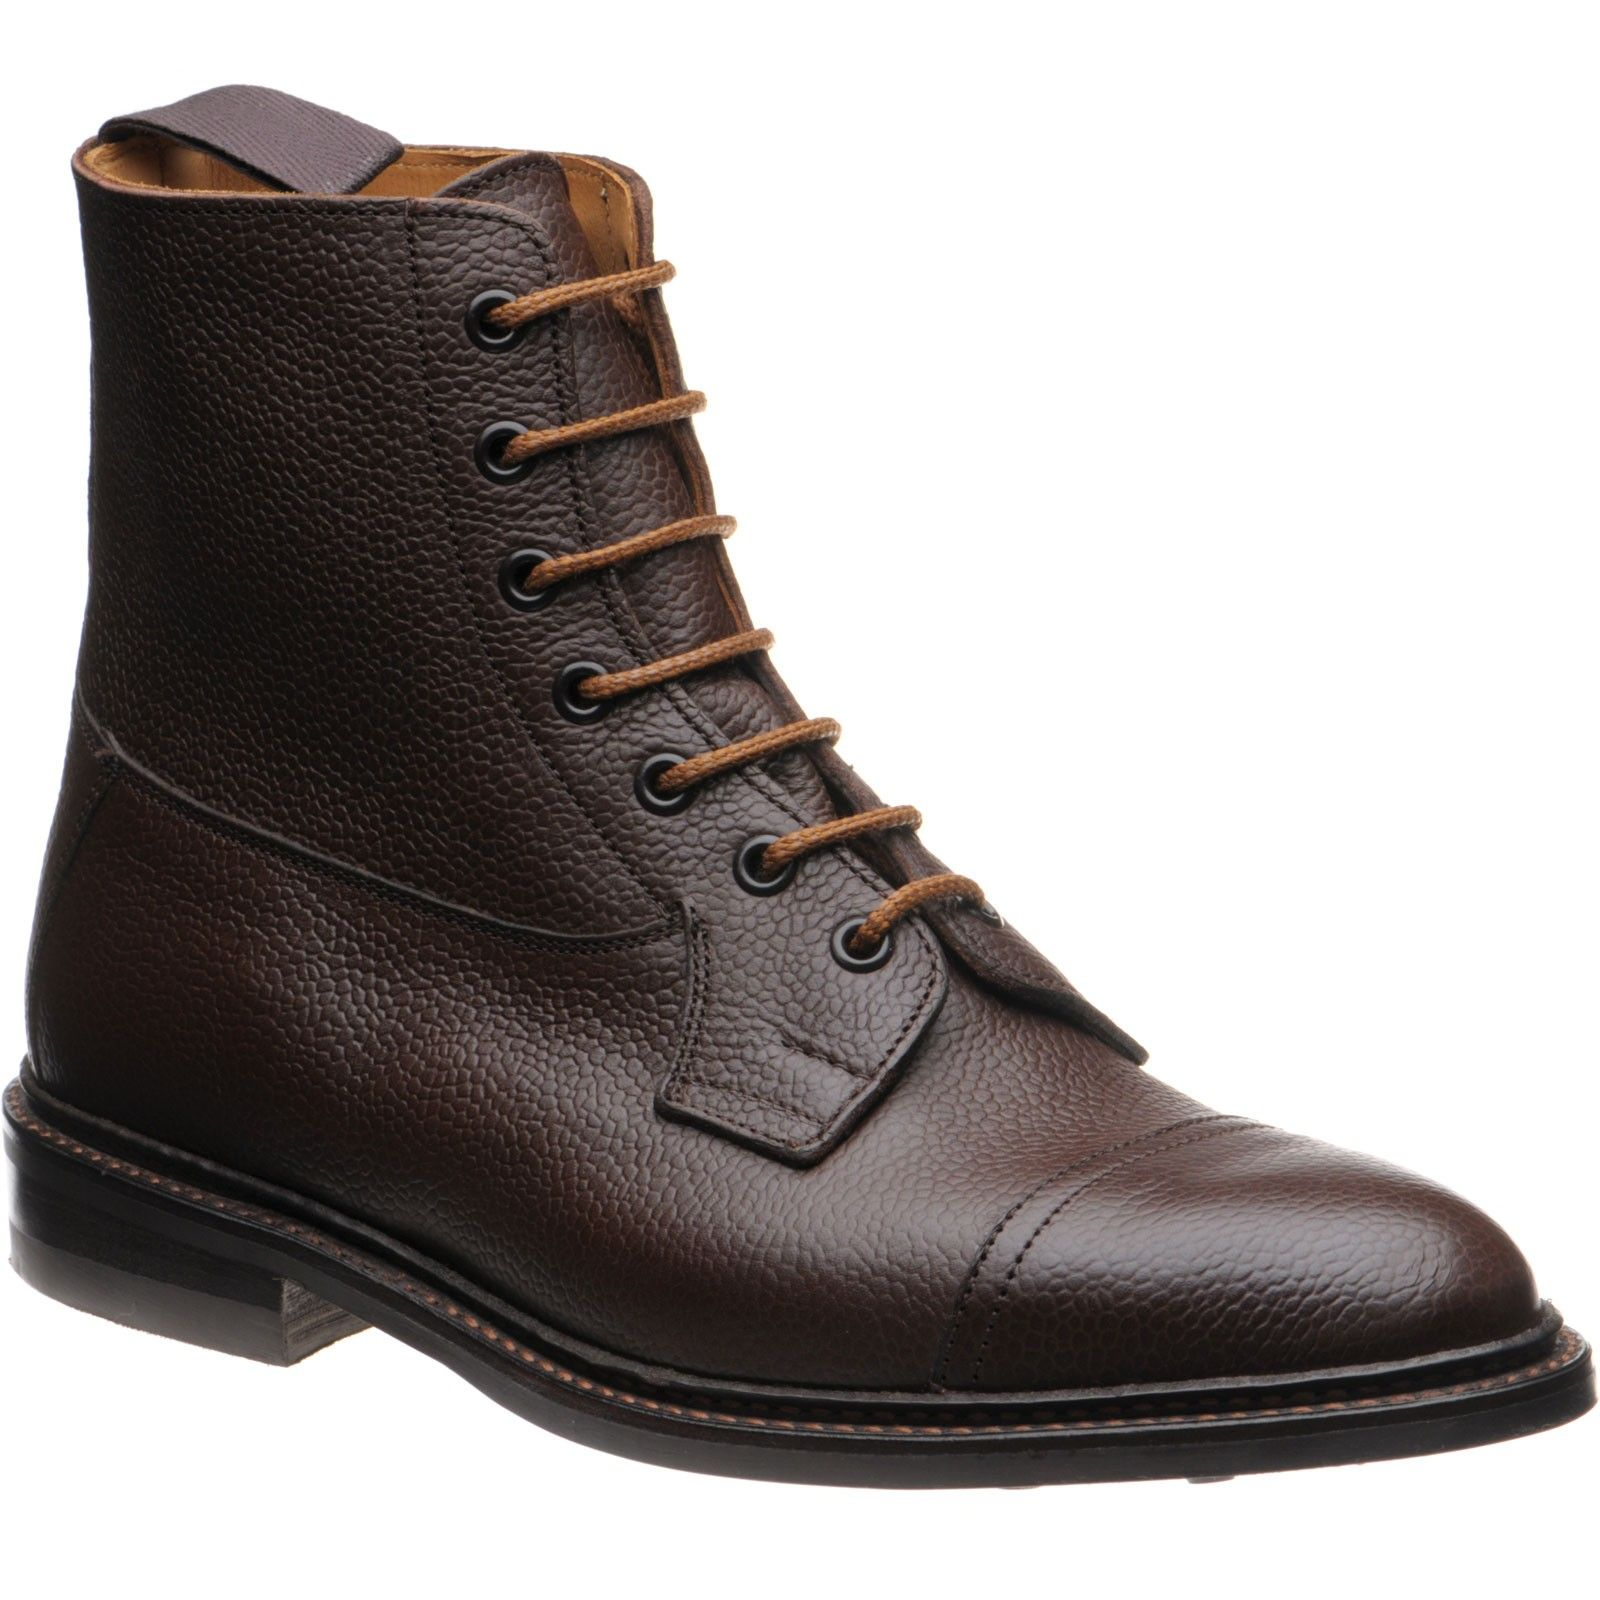 202d8a25a94 Trickers Calvert (7975) in dark brown grain from Herring Shoes | My ...